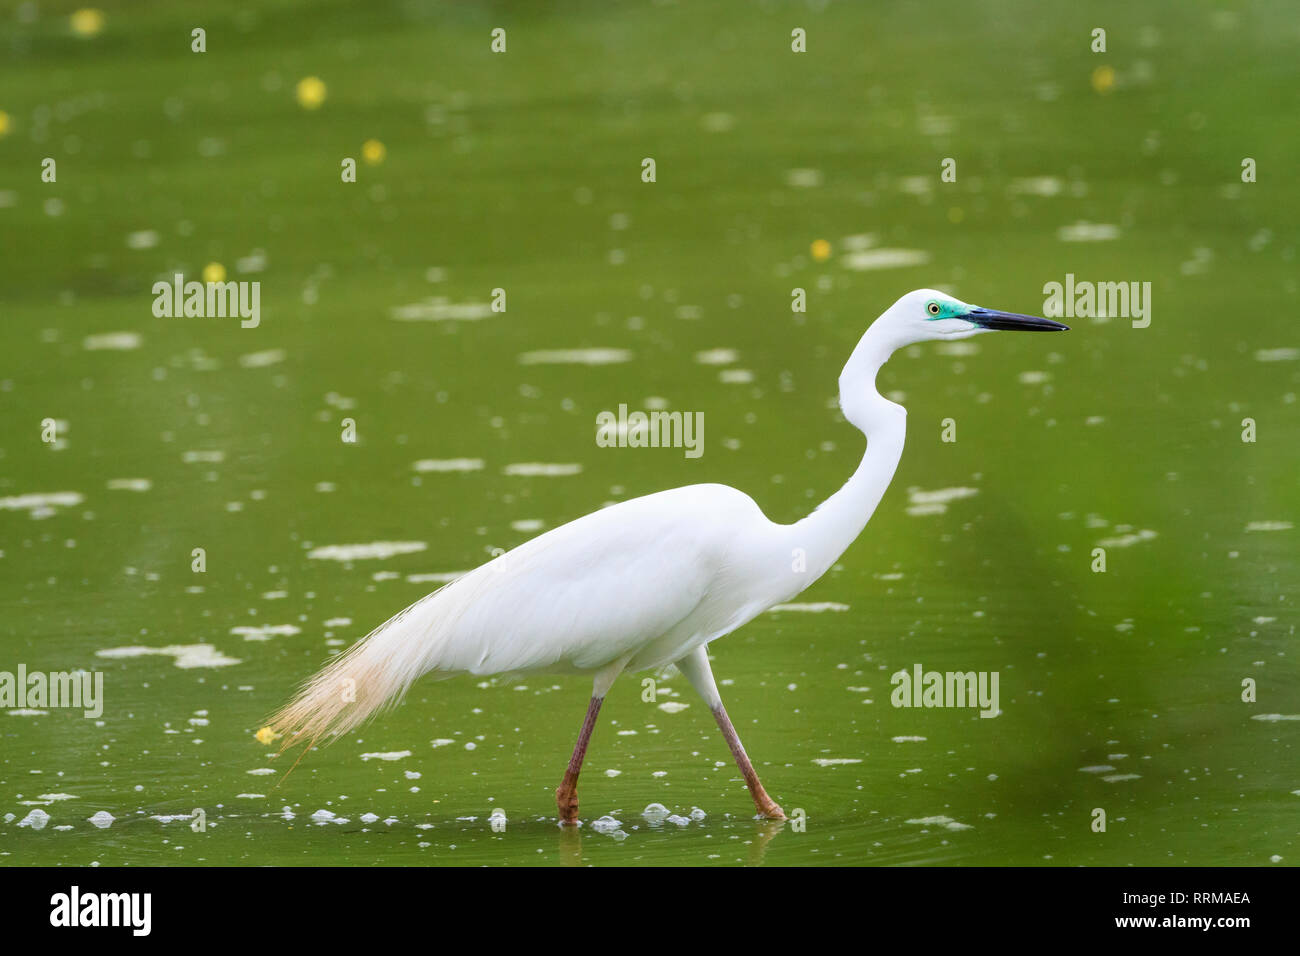 Great White Egret (Ardea alba) looking for food. Keoladeo National Park. Bharatpur. Rajasthan. India. - Stock Image